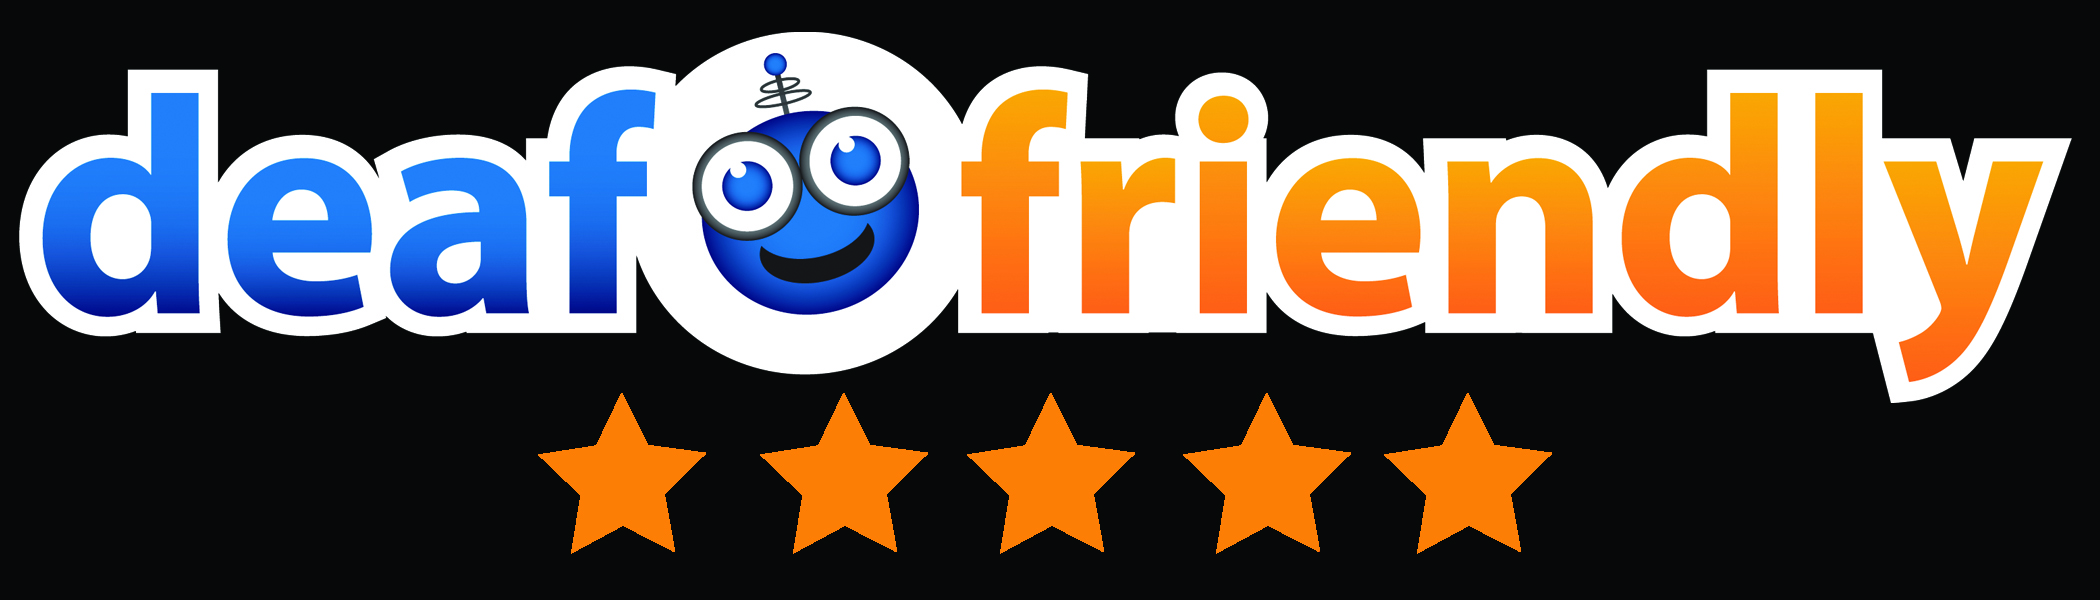 deaffriendly logo with five orange stars below